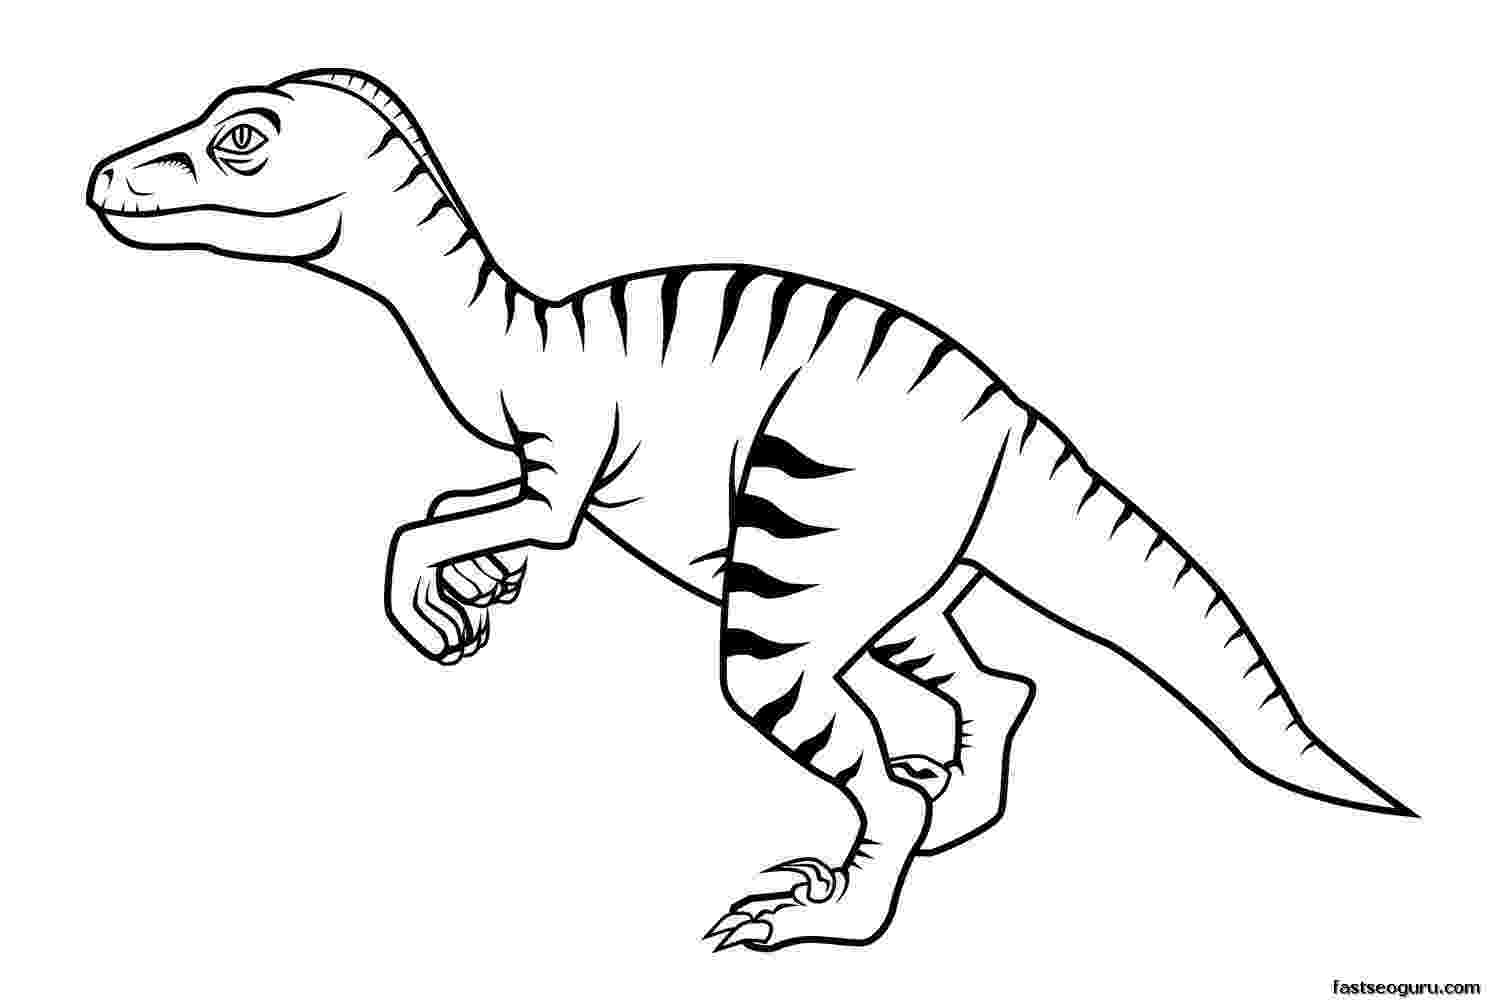 free printable dinosaur pictures free preschool dinosaur coloring worksheet dinosaur printable pictures free